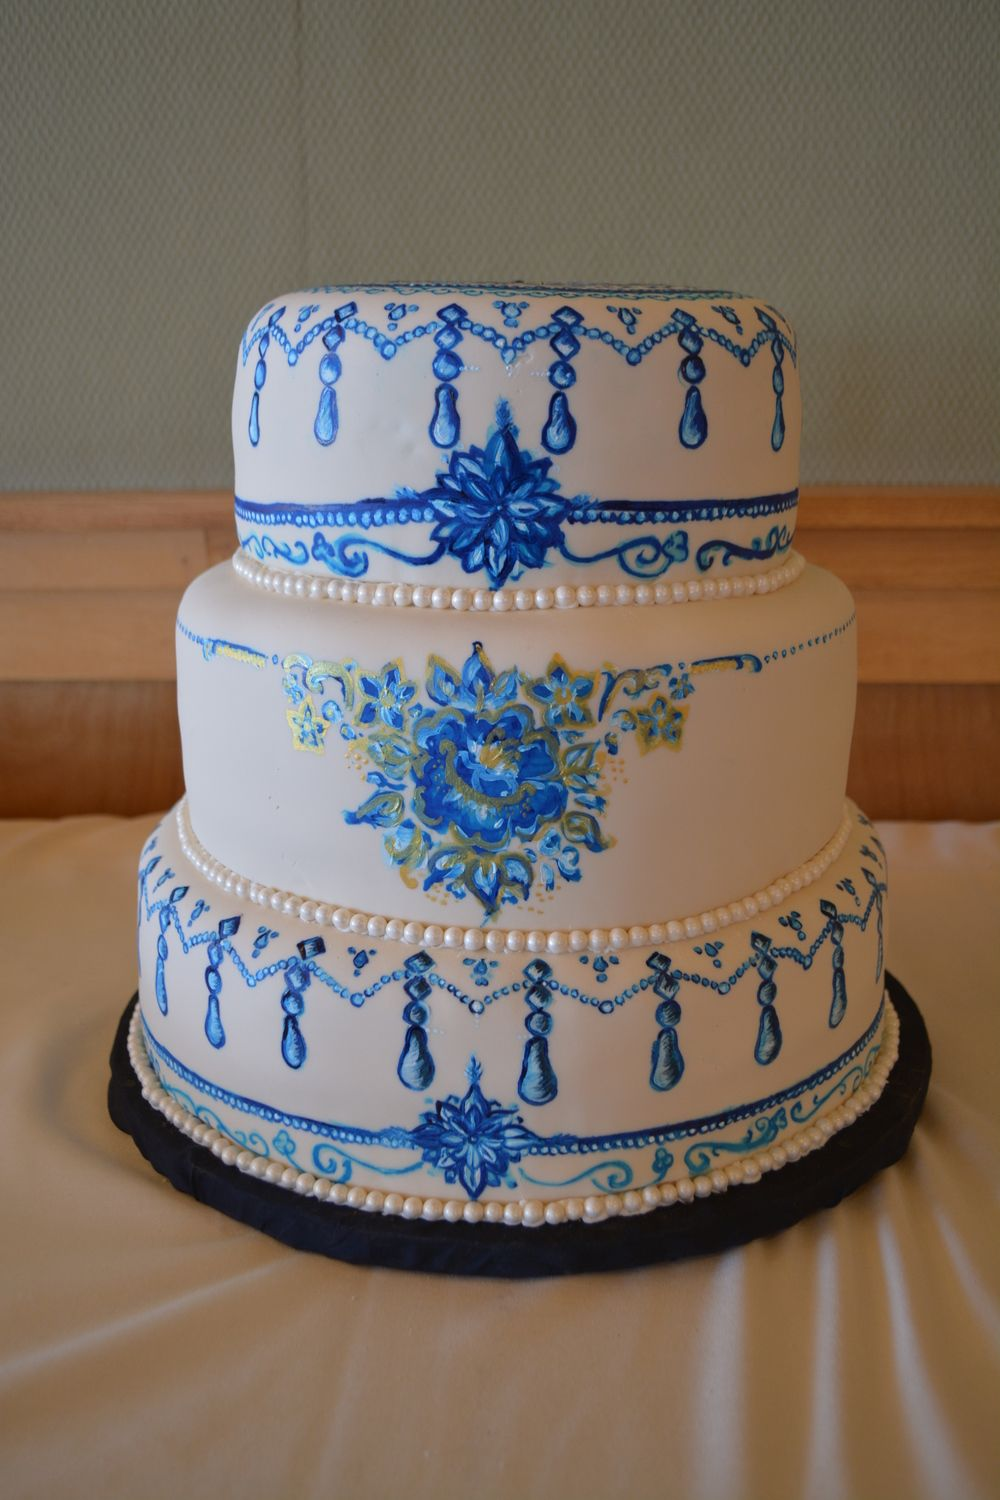 How sweet it is cakes duluth mn cake sweet wedding cakes